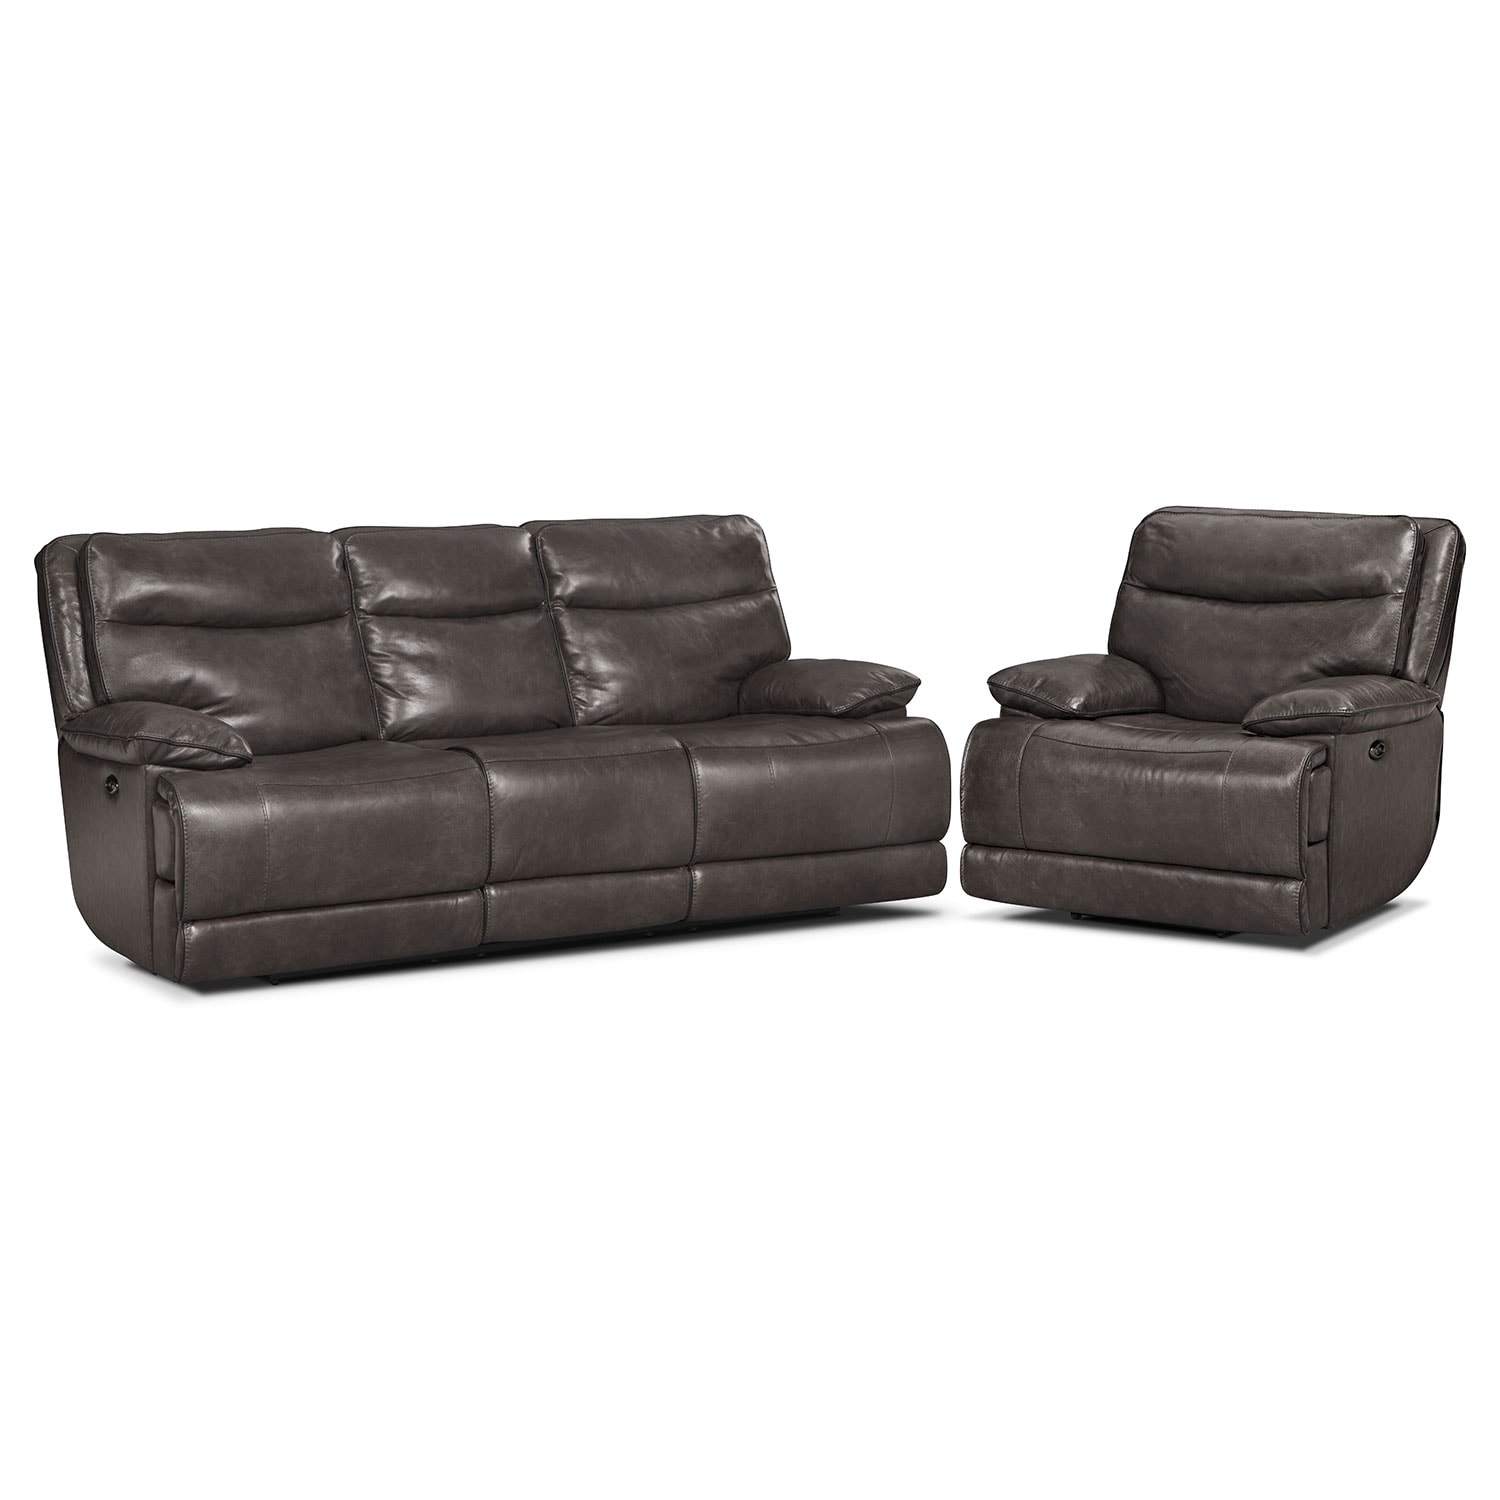 Monaco Power Reclining Sofa and Recliner Set - Gray